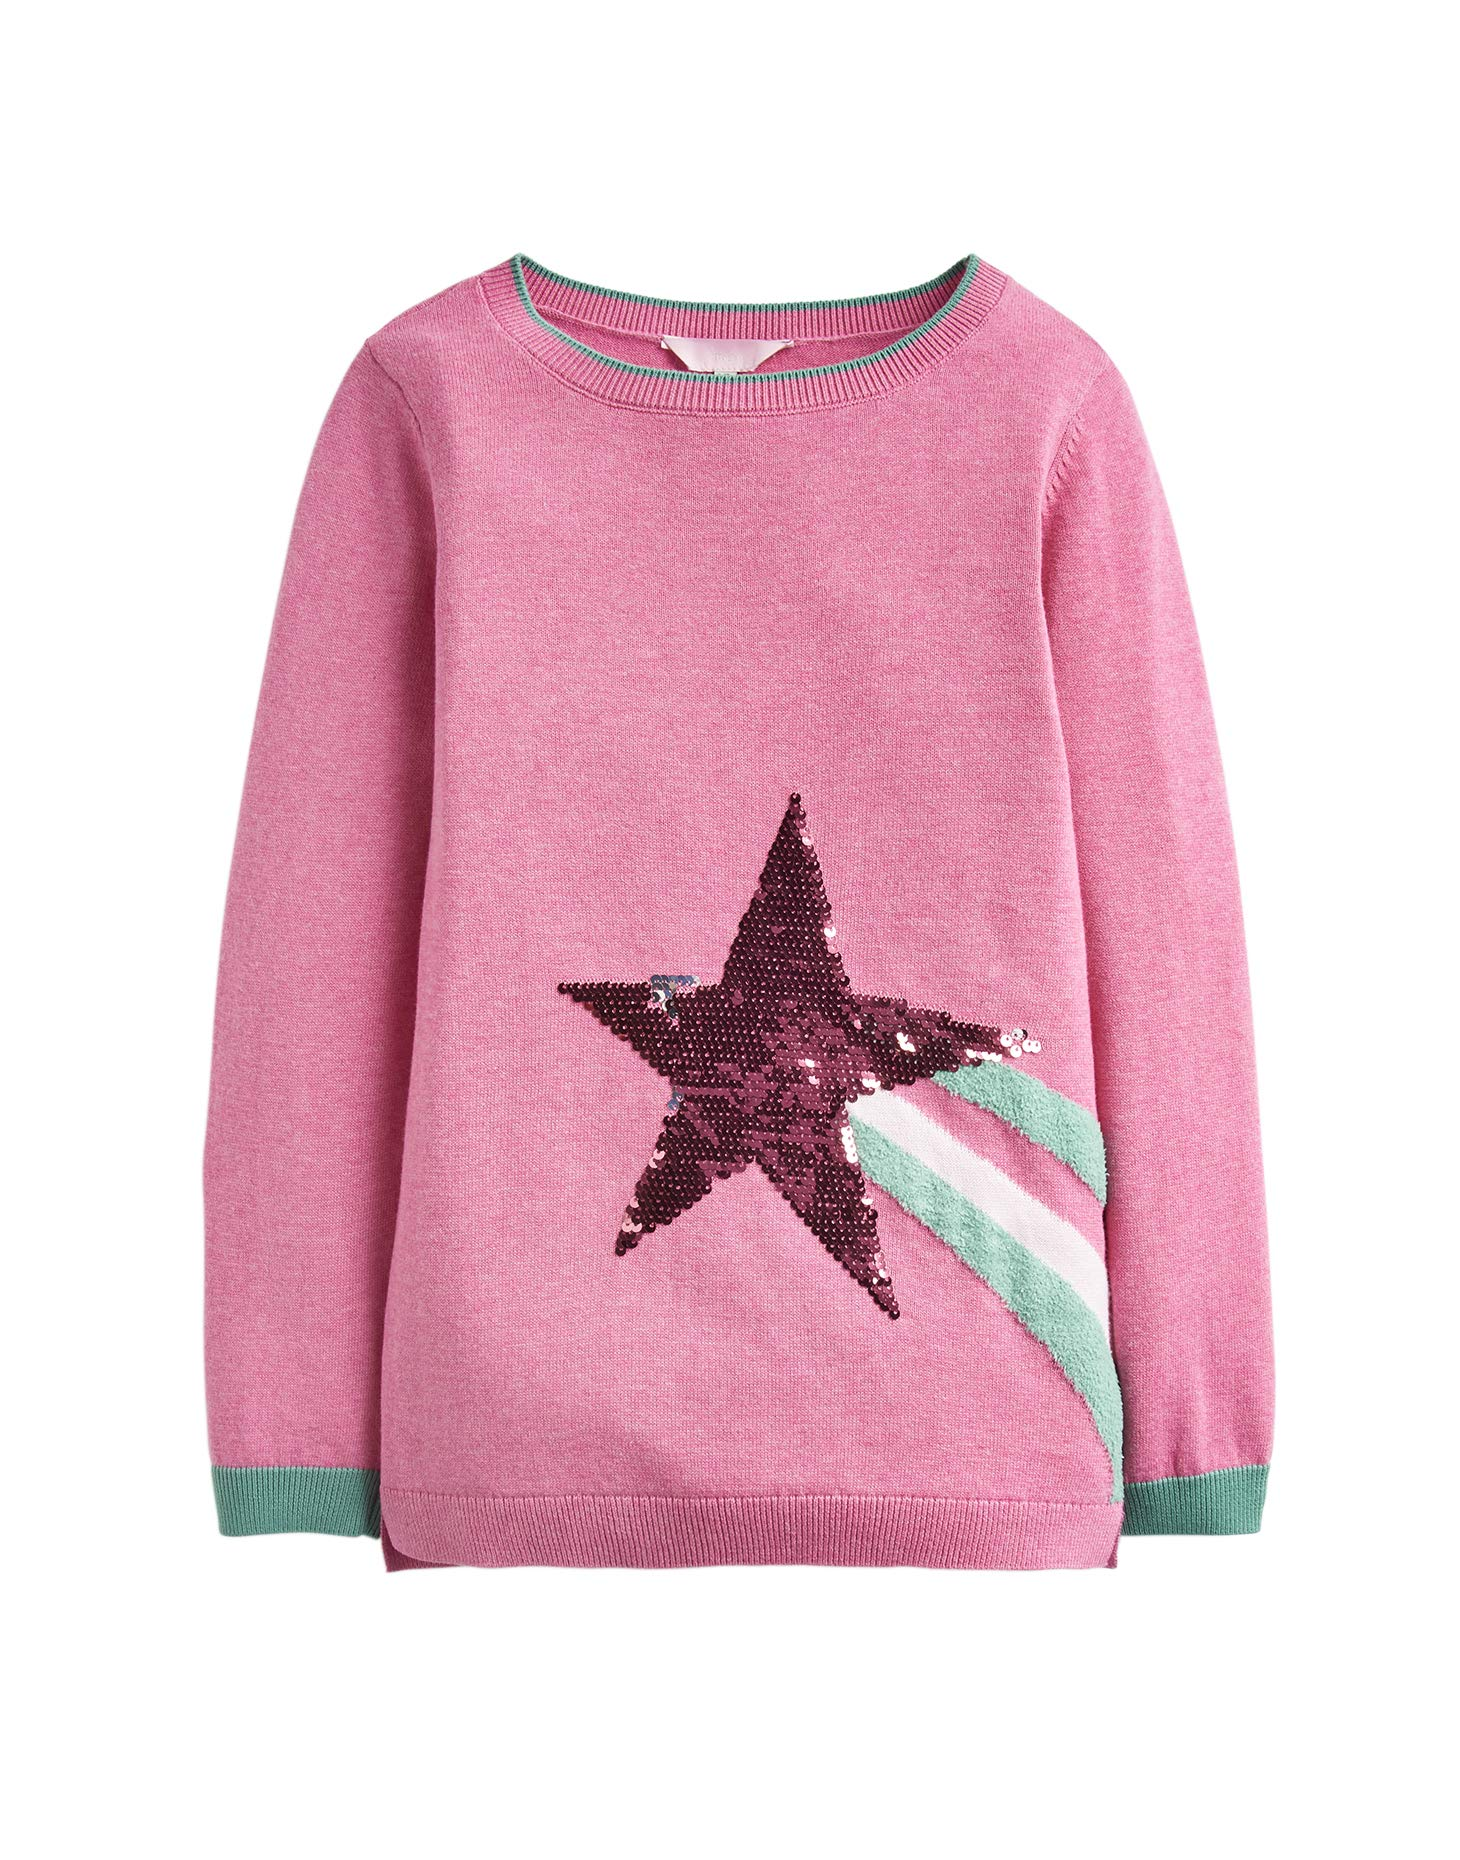 Joules Miranda Knitted Jumper - Blossom Pink Shooting Star - 3 Years - 98 cm by Joules